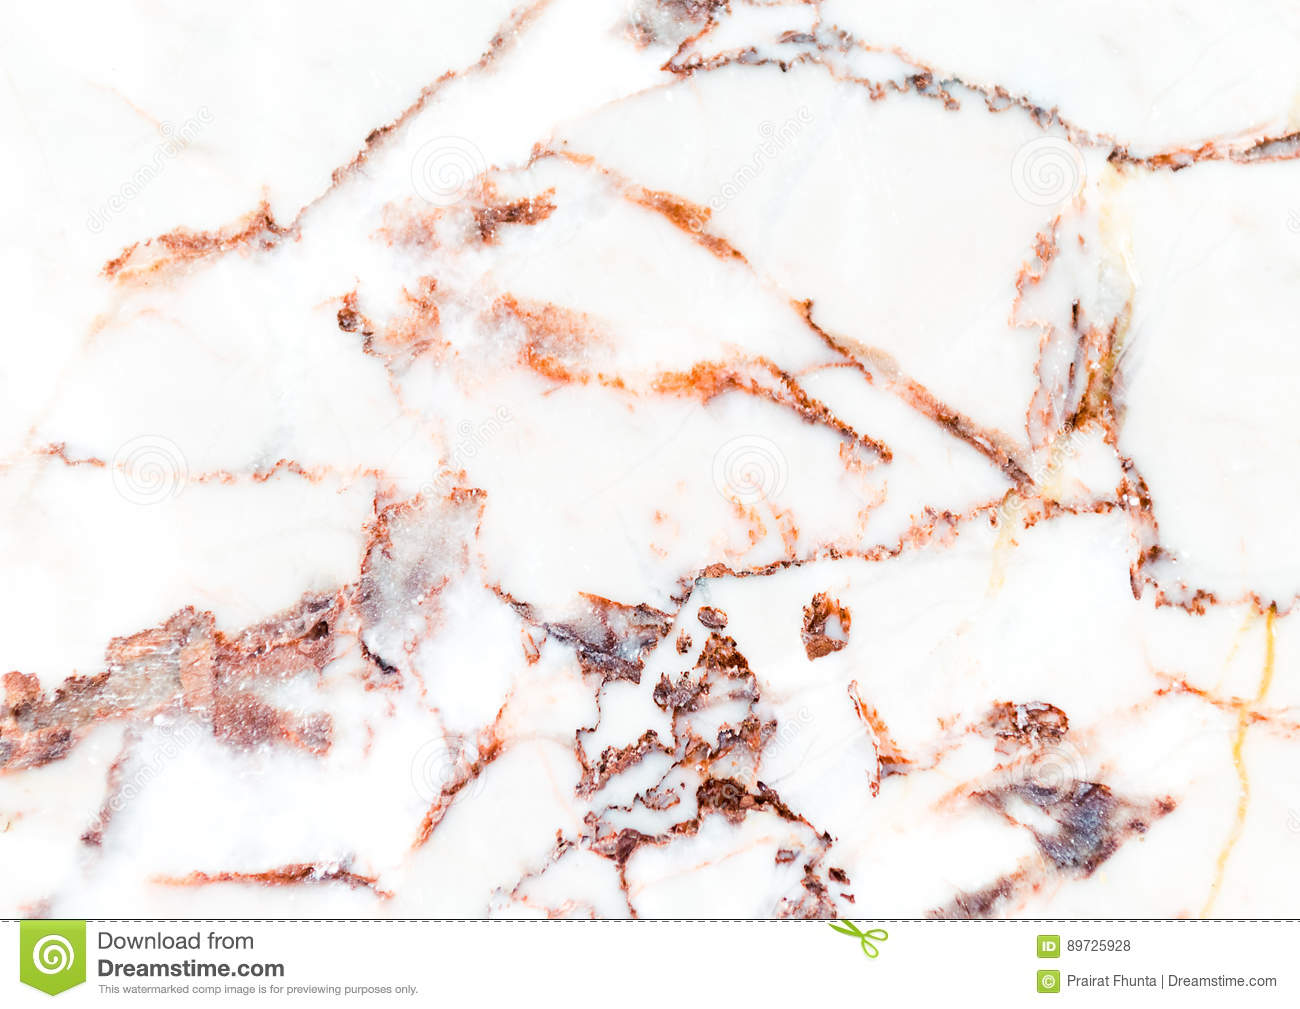 White Marble pattern with veins useful as background or texture, Detailed real genuine marble from nature.